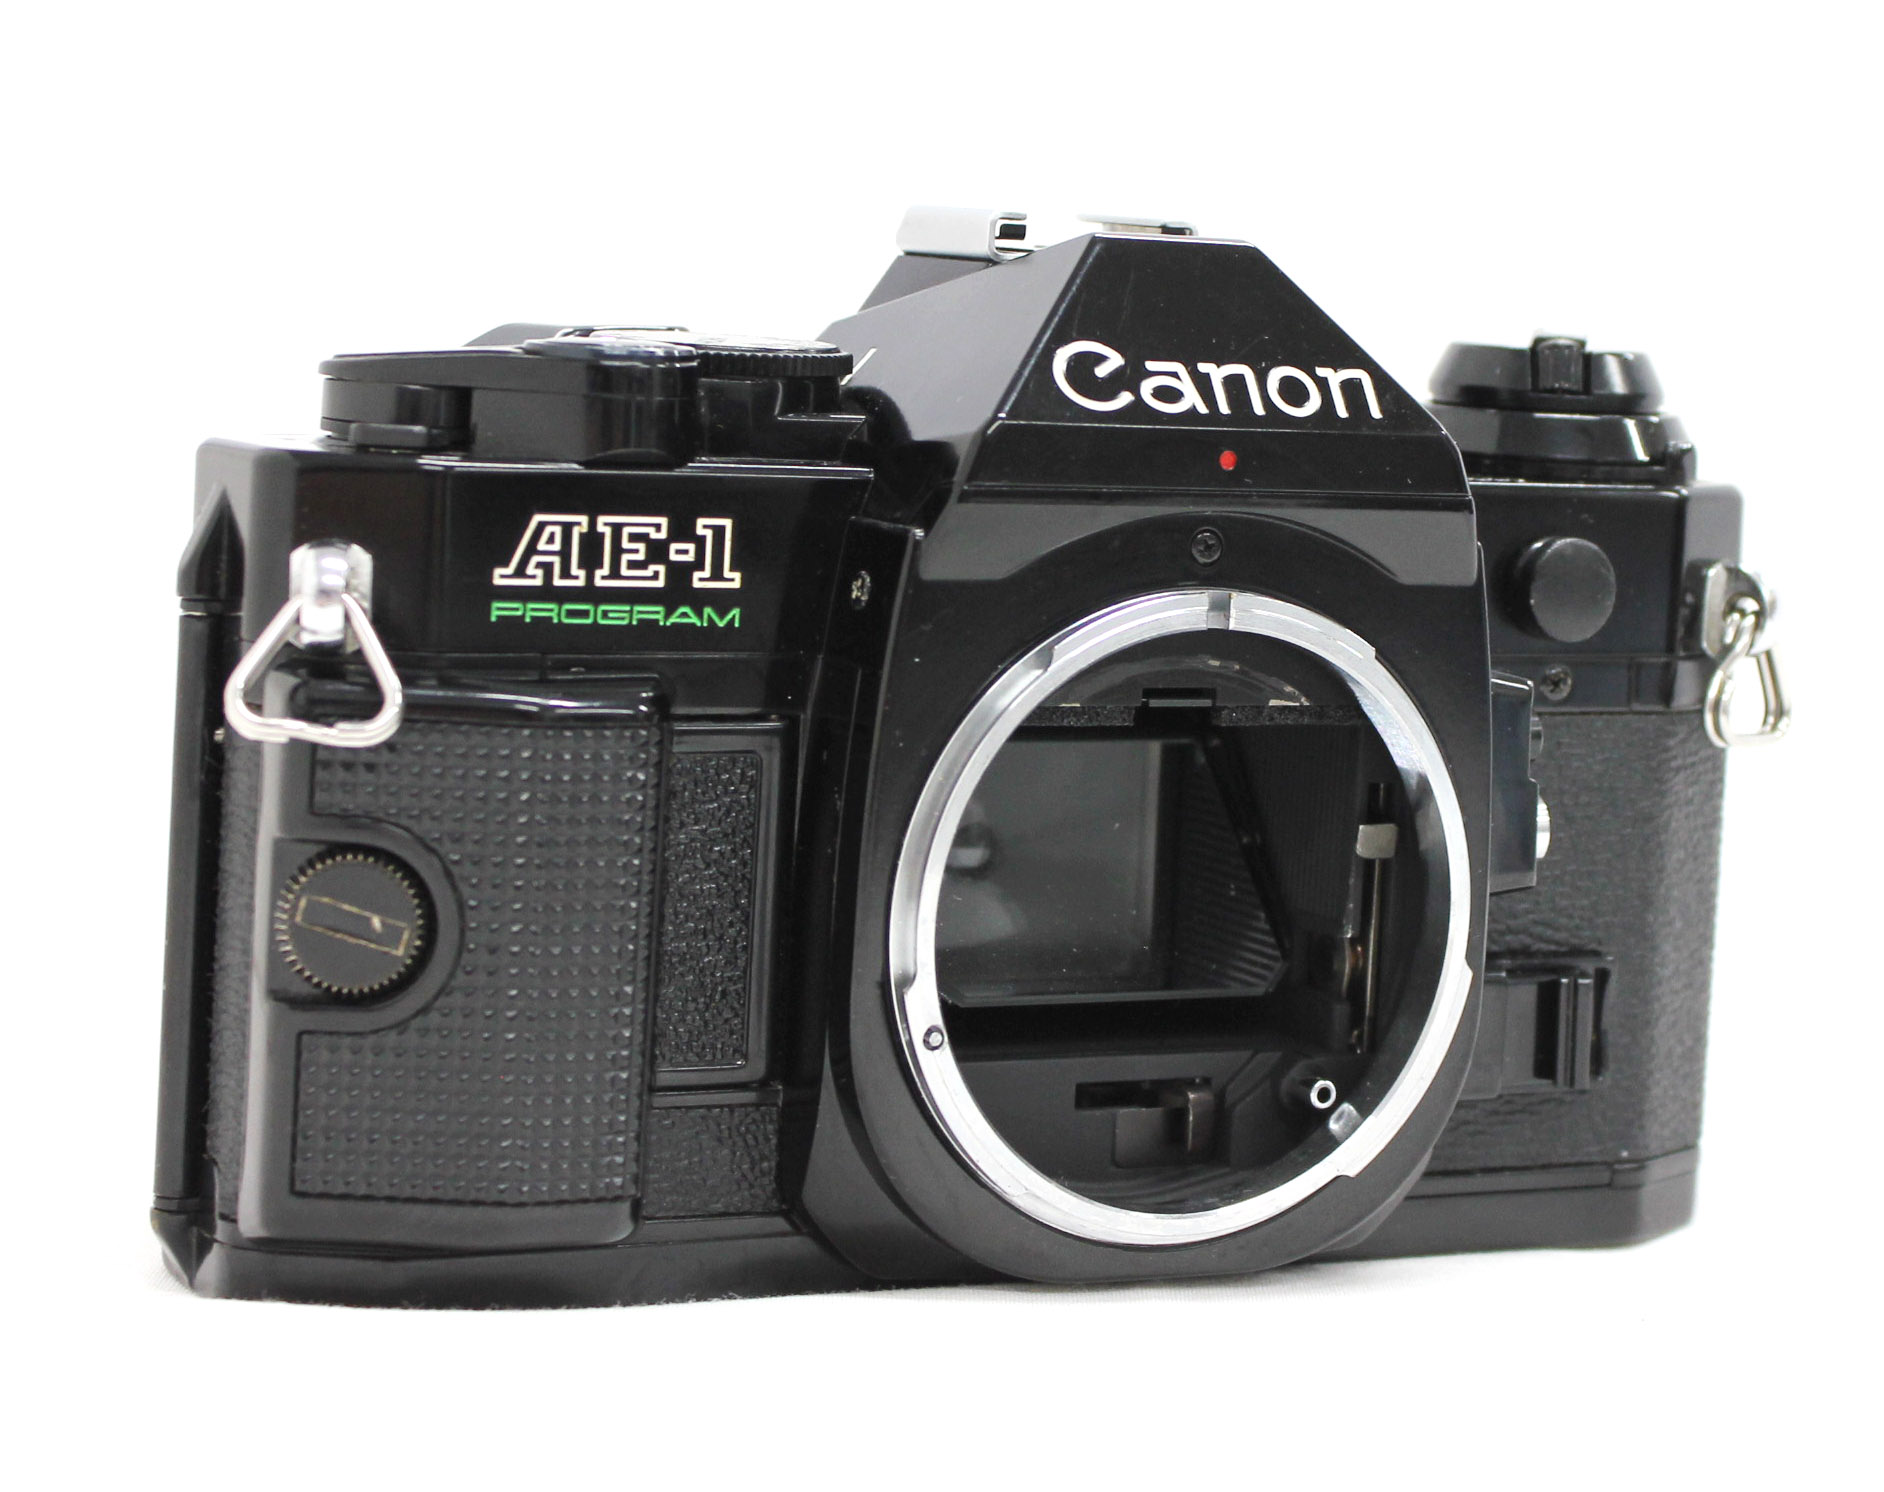 Canon AE-1 Program 35mm SLR Film Camera Black with New FD 35mm F/2.8 Lens from Japan Photo 2